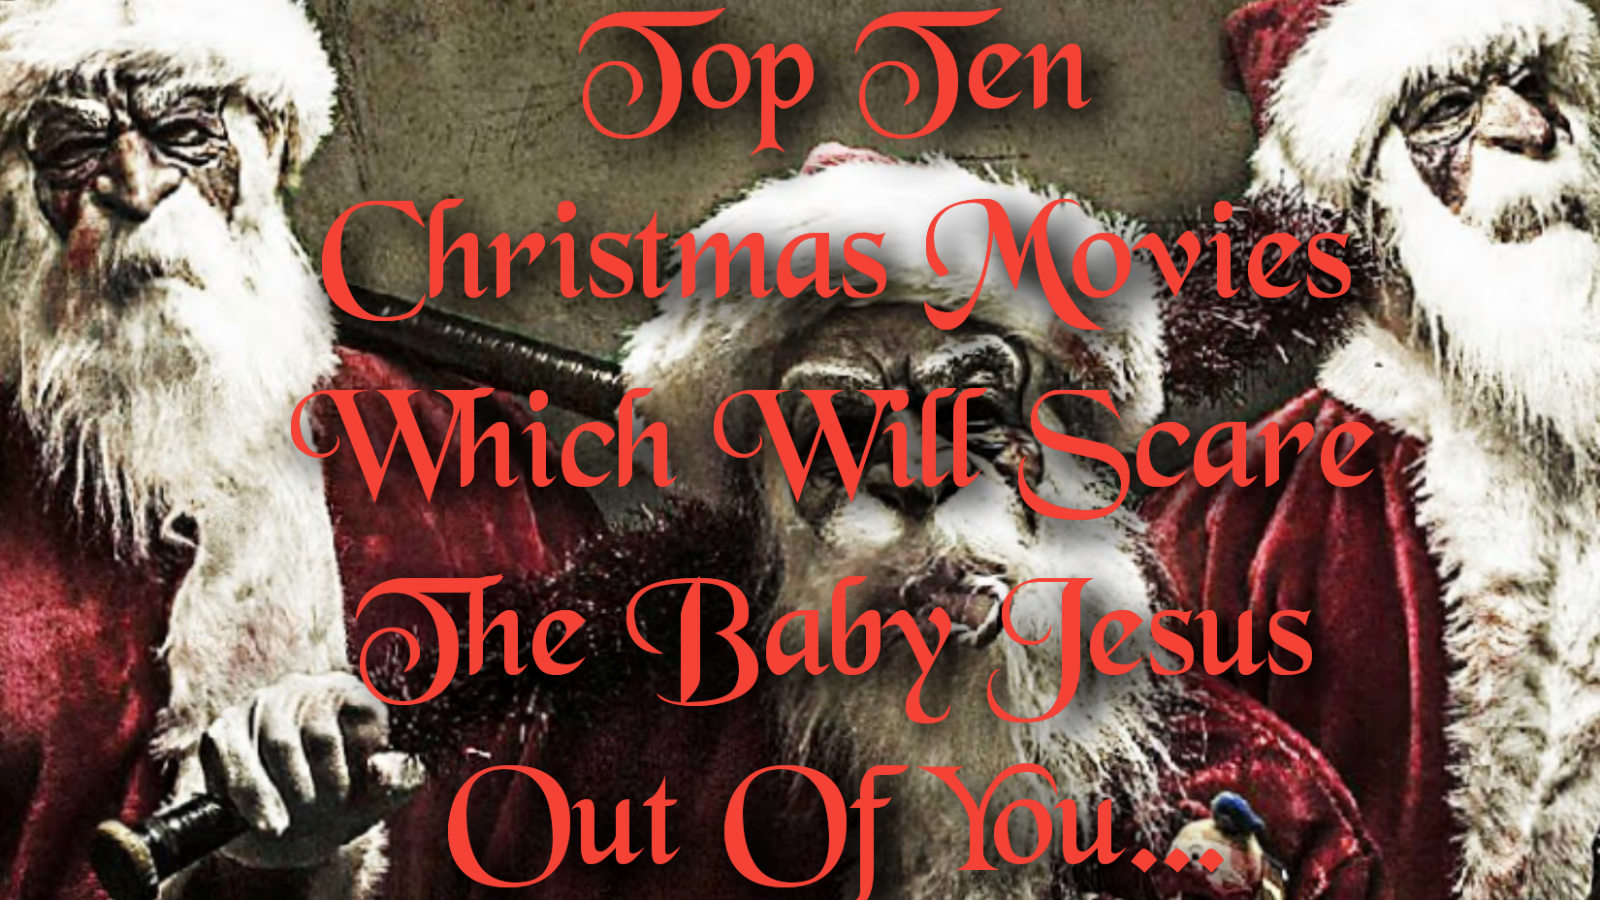 Top Ten Christmas Movies Which Will Scare The Baby Jesus Out Of You